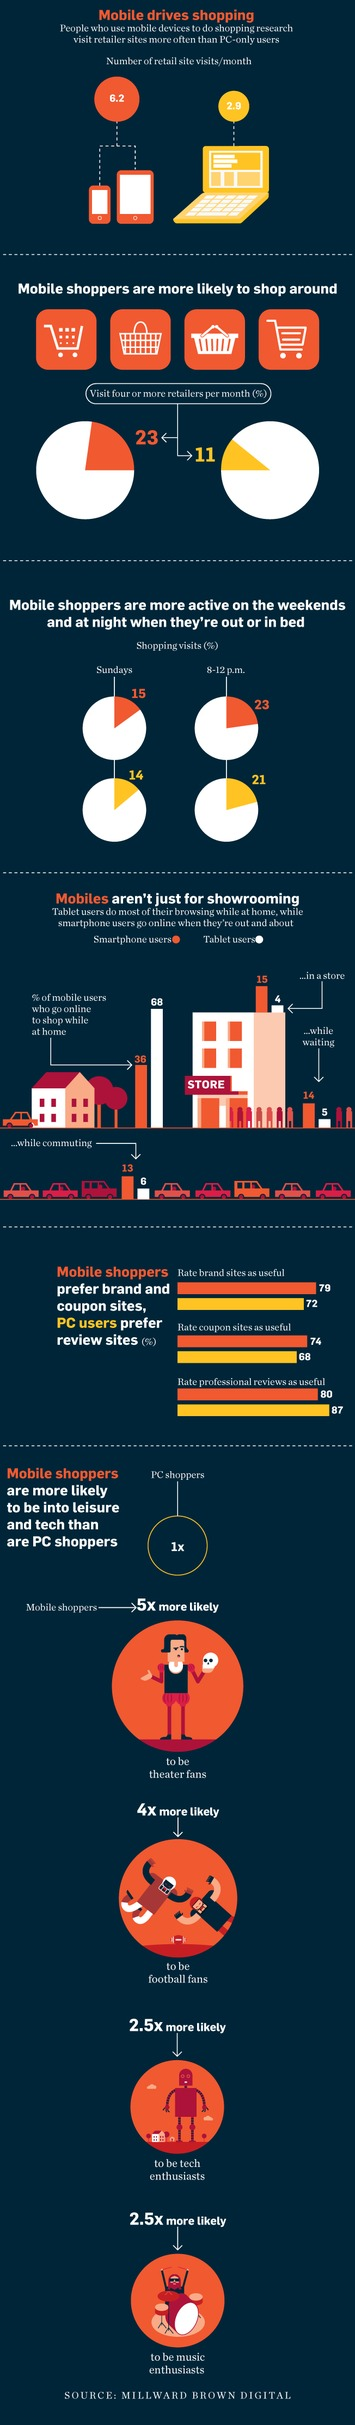 People Shopping on Mobile Devices Visit More Sites Than Those on a PC | A Marketing Mix | Scoop.it